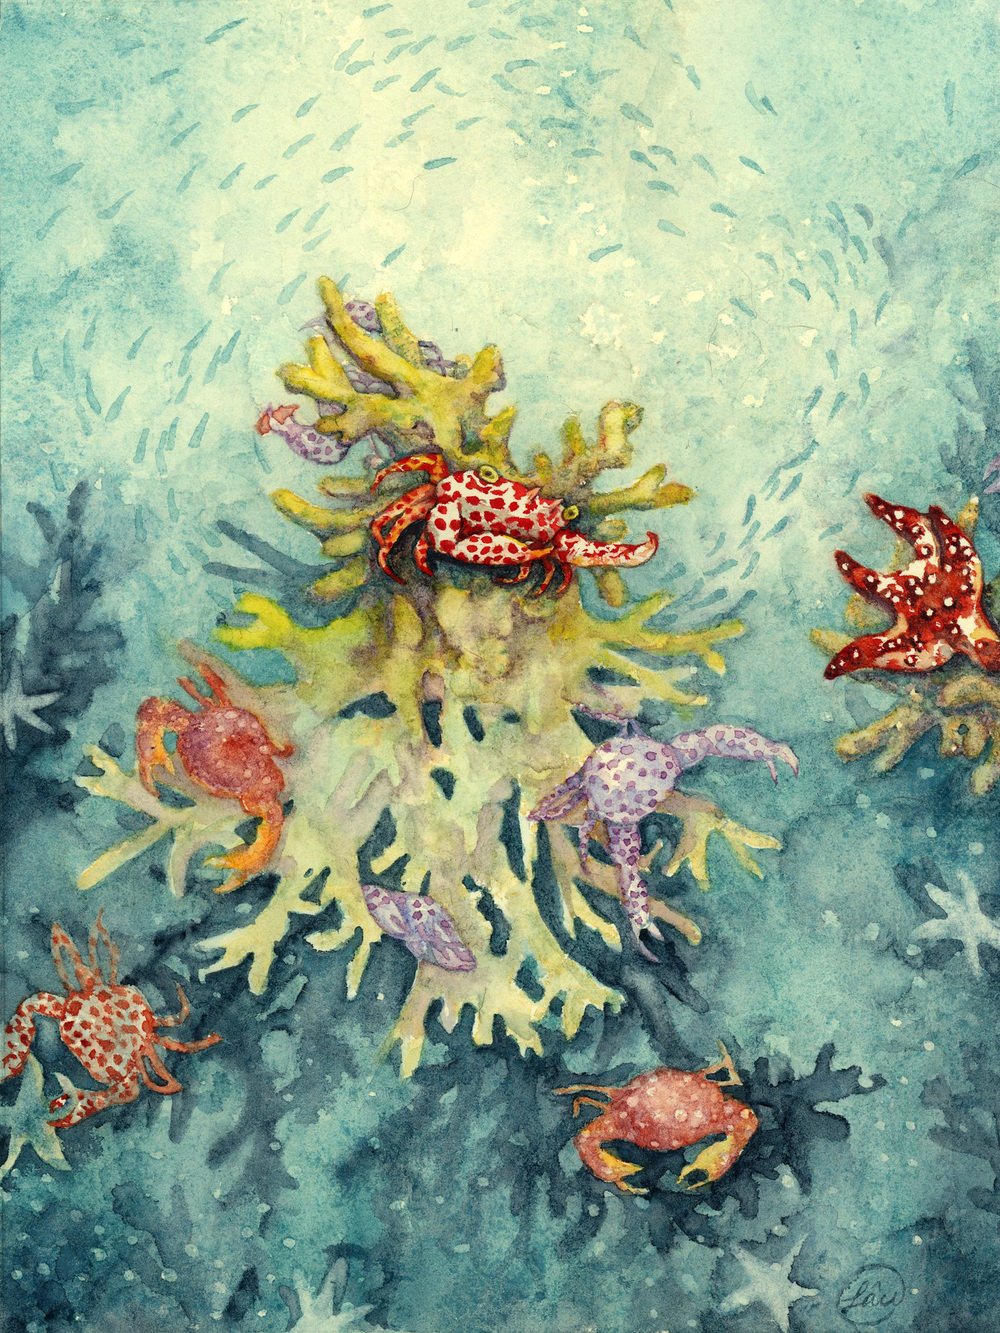 Crabs and Coral  Watercolor on linen paper 2014  Based on an article on how crabs protect the coral reefs from being viciously consumed by starfishes.  http://smithsonianscience.org/2014/09/32538/